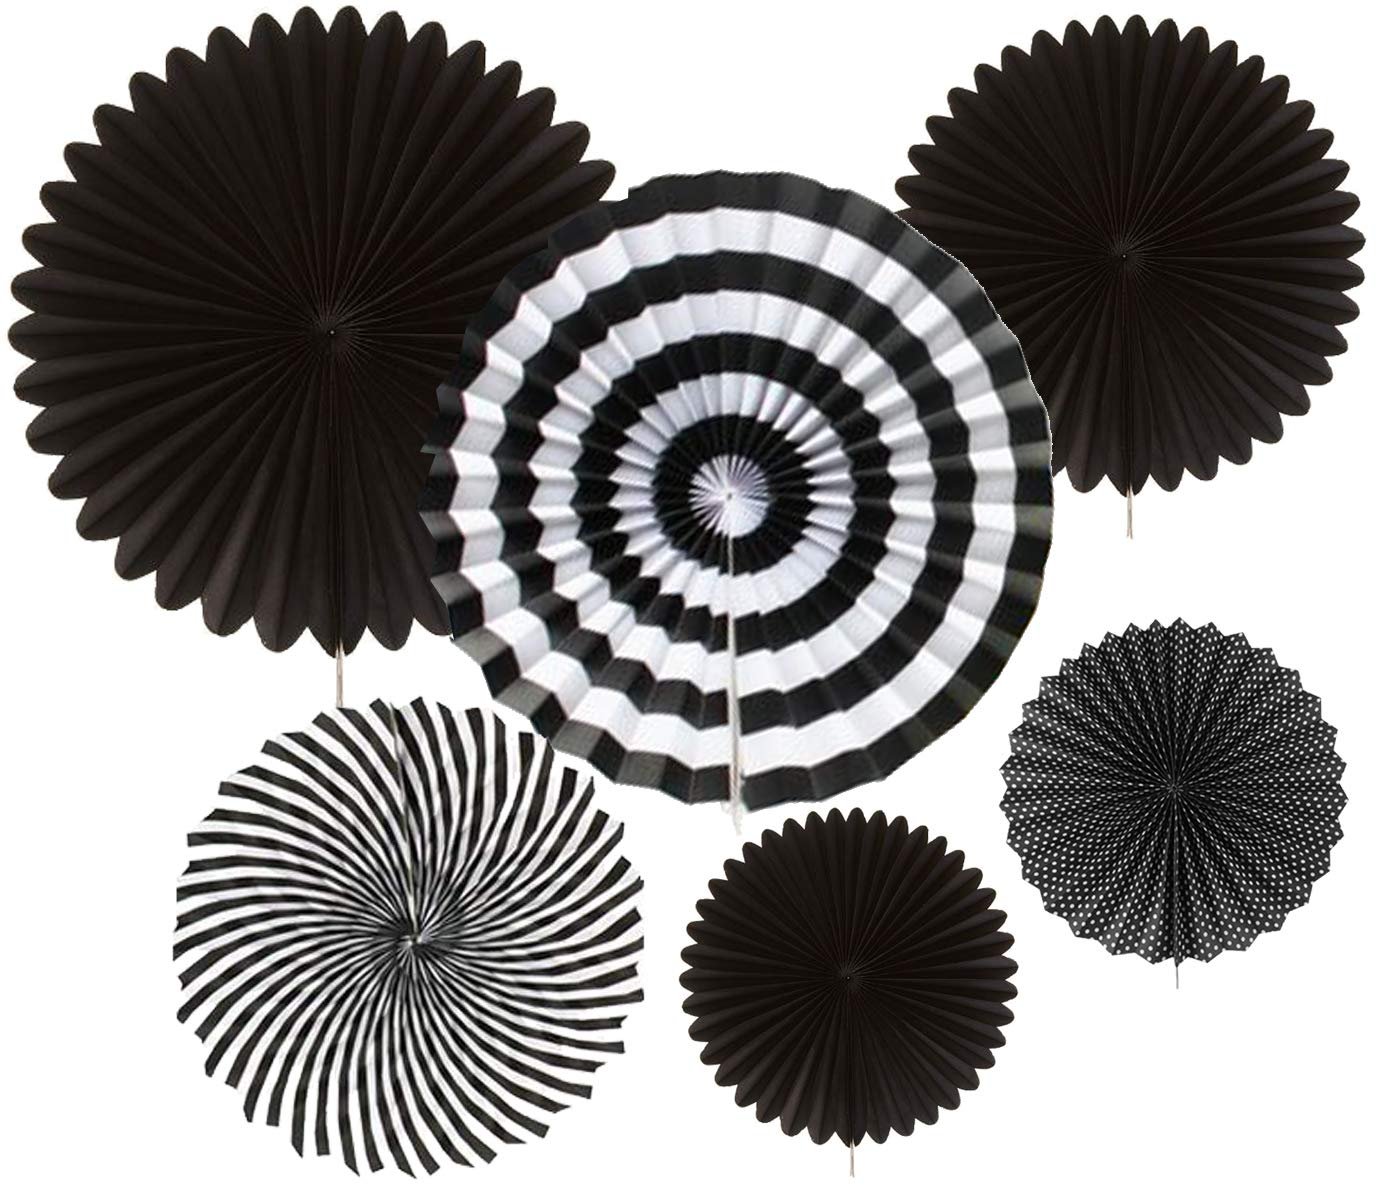 AMFIN Decoration Paper Party Fan (Black and White)-Pack of 6 (B07GR21QBS) Amazon Price History, Amazon Price Tracker